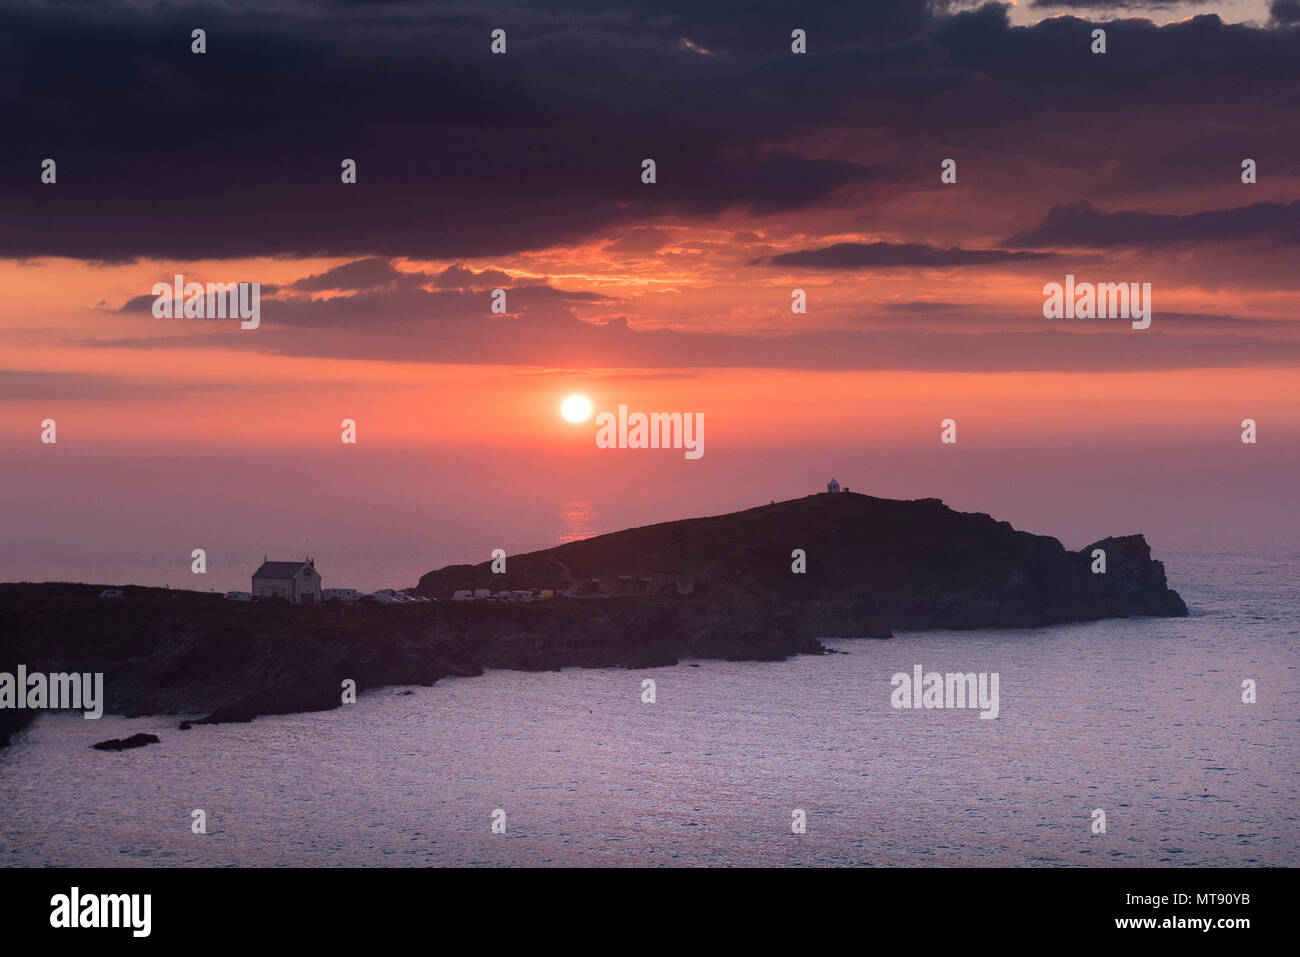 Newquay, Cornwall, UK. 28th May, 2018. UK Weather. A glorious sunset over Towan Head to end a day of wonderful summer weather for Newquay, Cornwall. Gordon Scammell/Alamy Live News - Stock Image